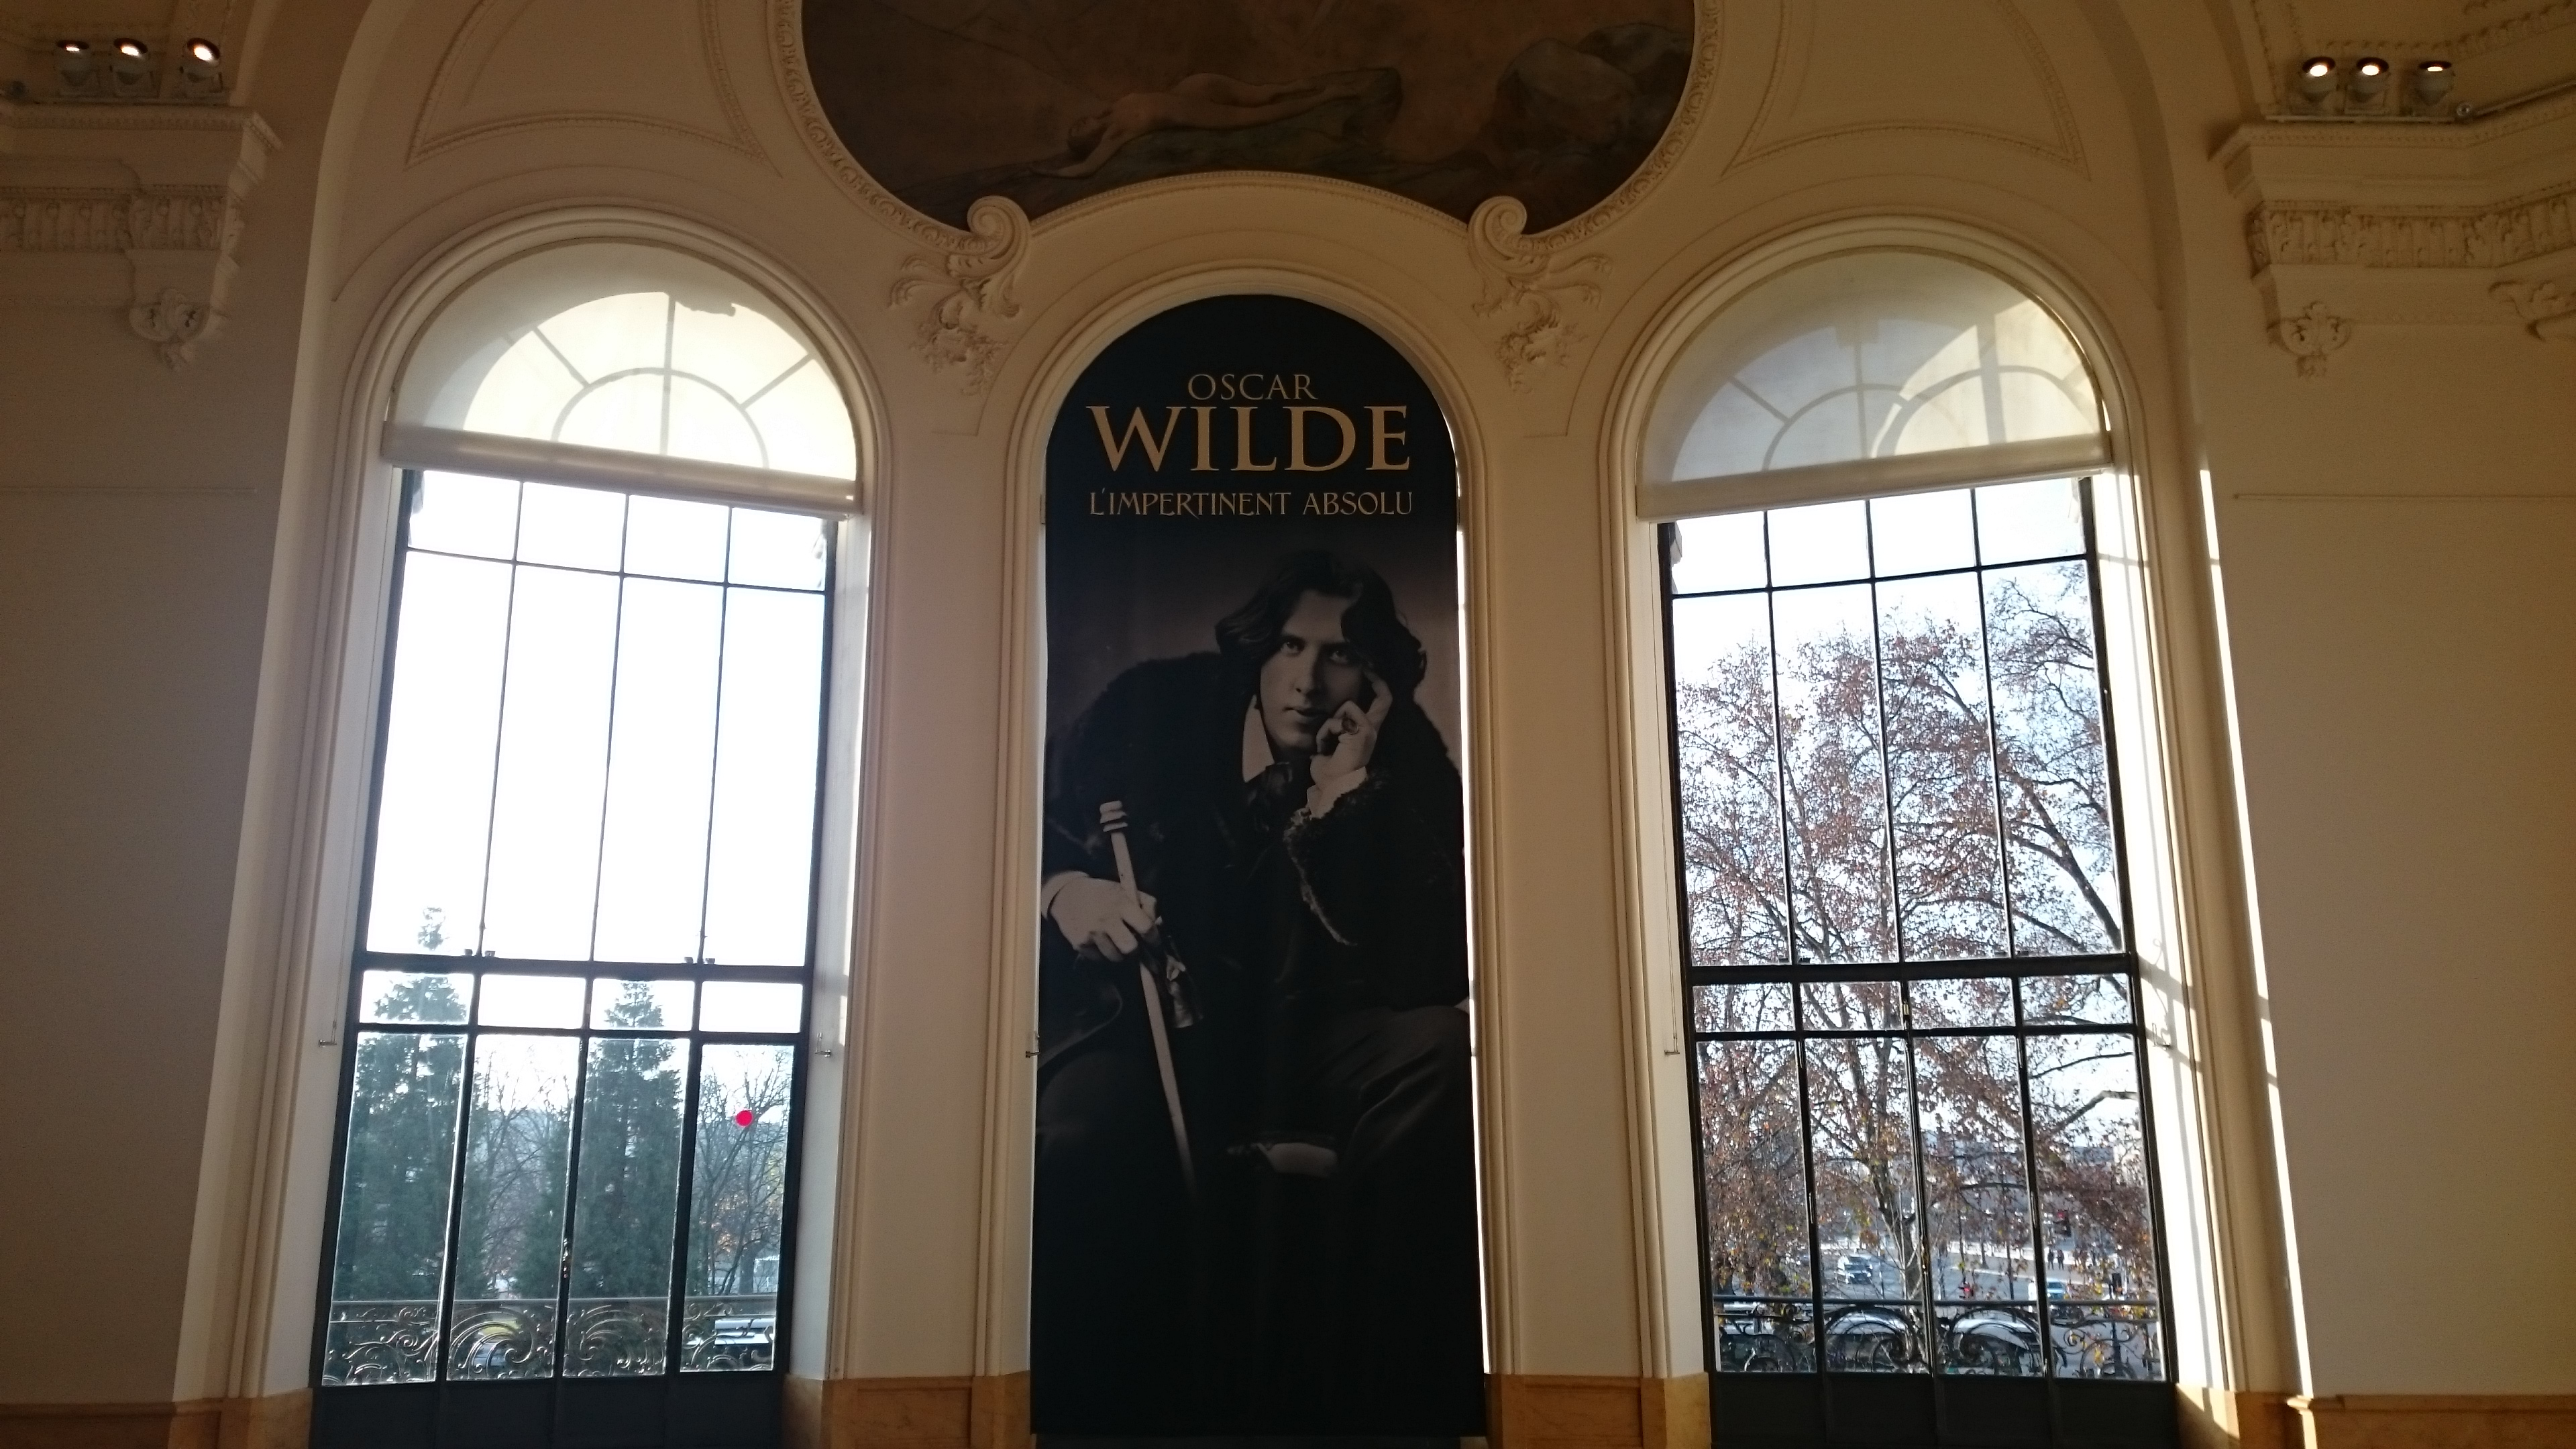 It Explains Very Well Wilde's Education And Role Models, His Taste For Art,  His Admiration For Ruskin And His Work As An Art Critic